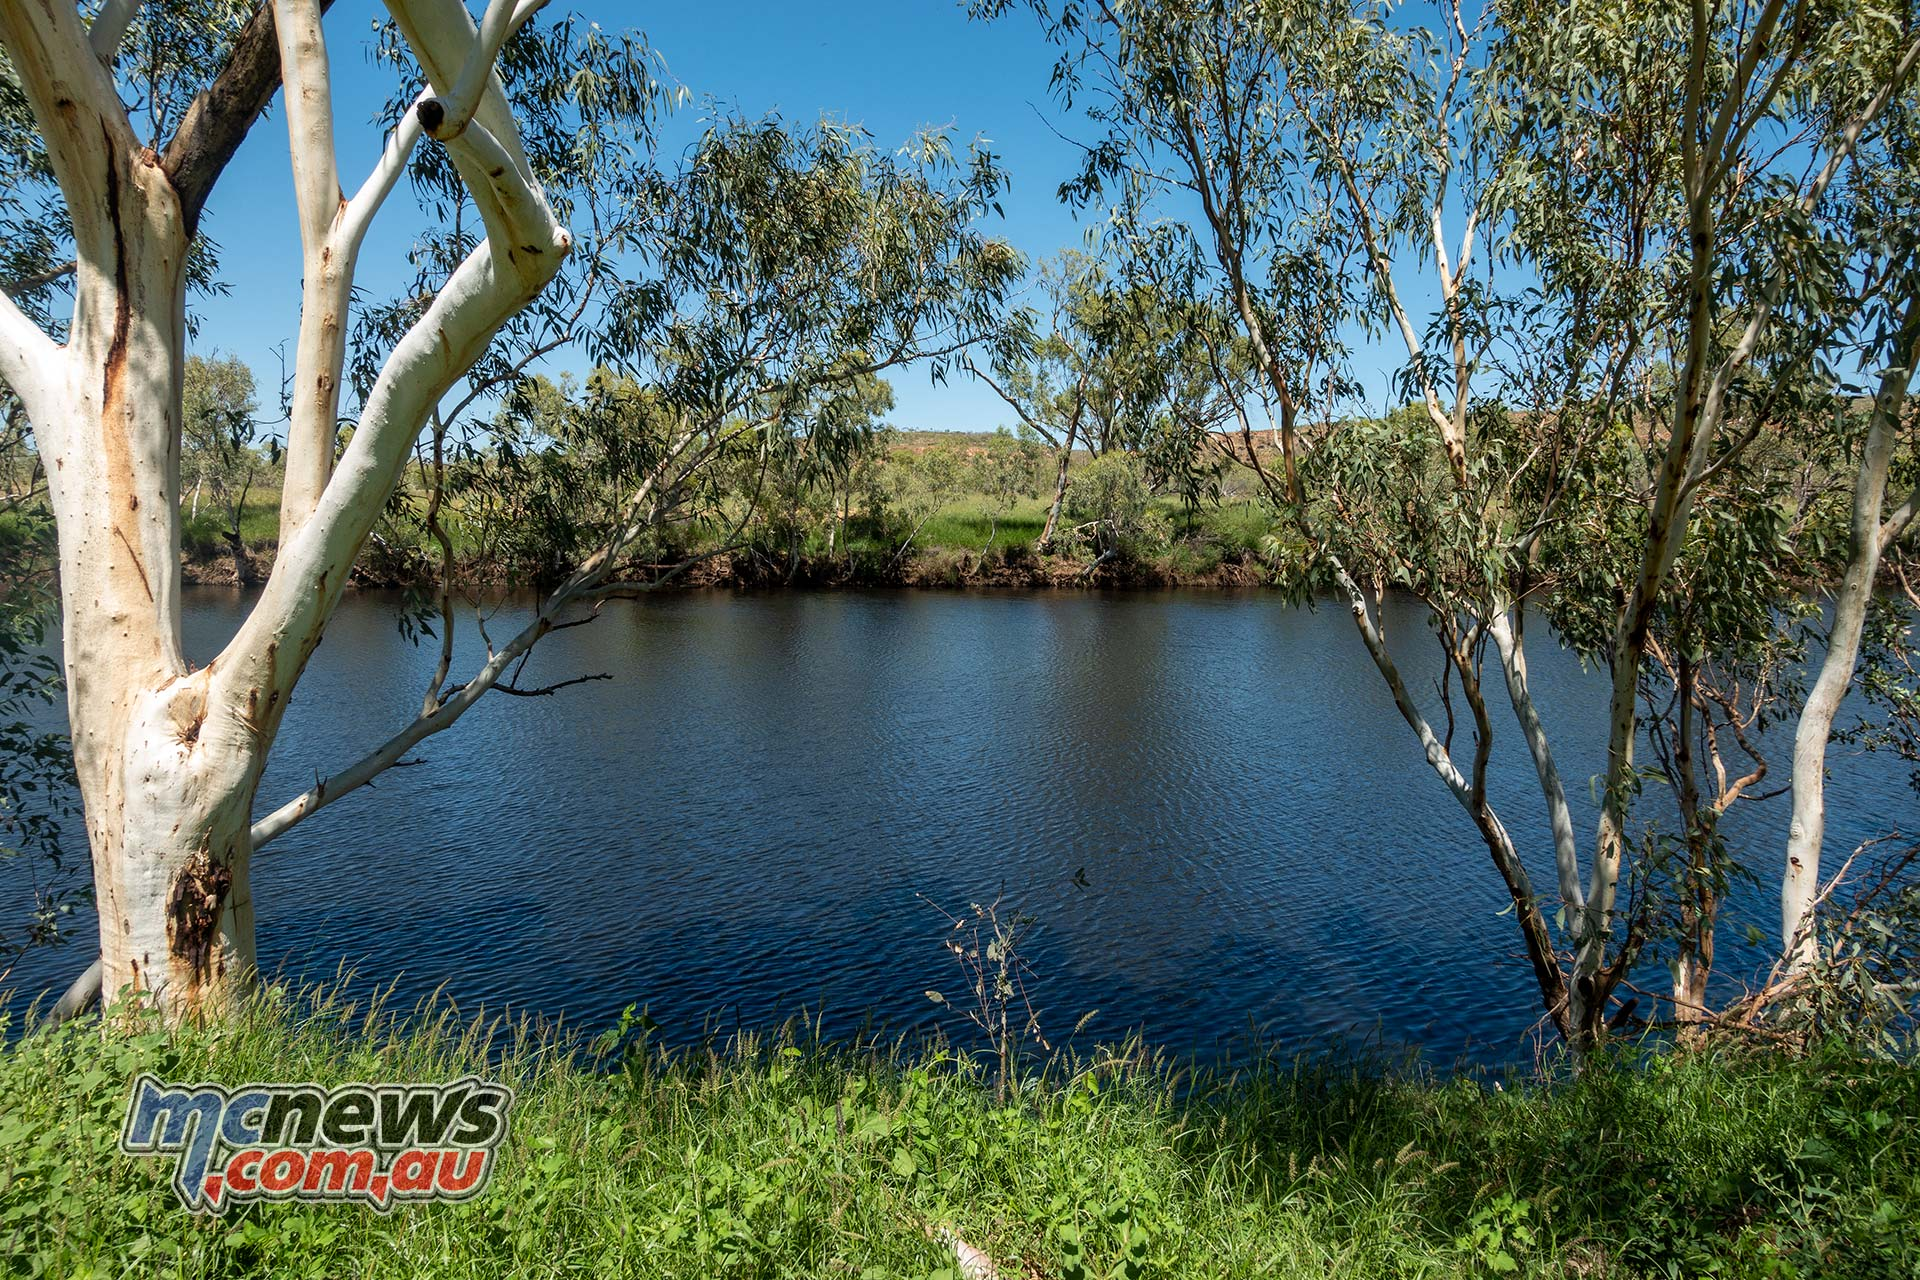 Honda Africa Twin Day Lunch Iytwelepenty Davenport Ranges National Park Old Police Station Waterhole